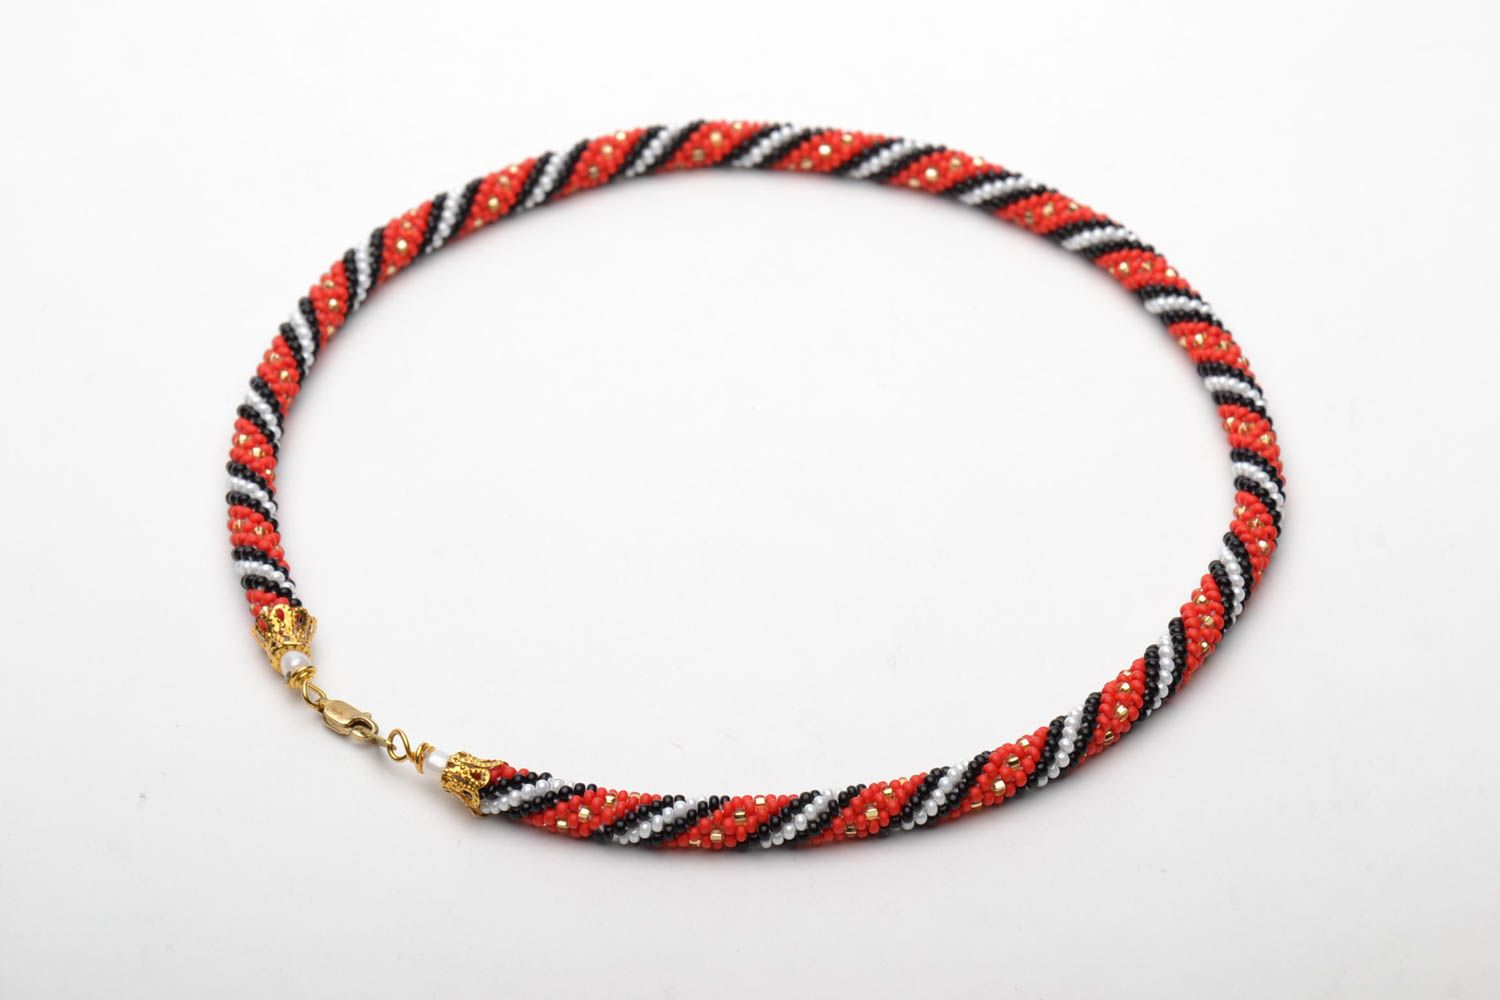 Beaded necklace in ethnic style photo 5